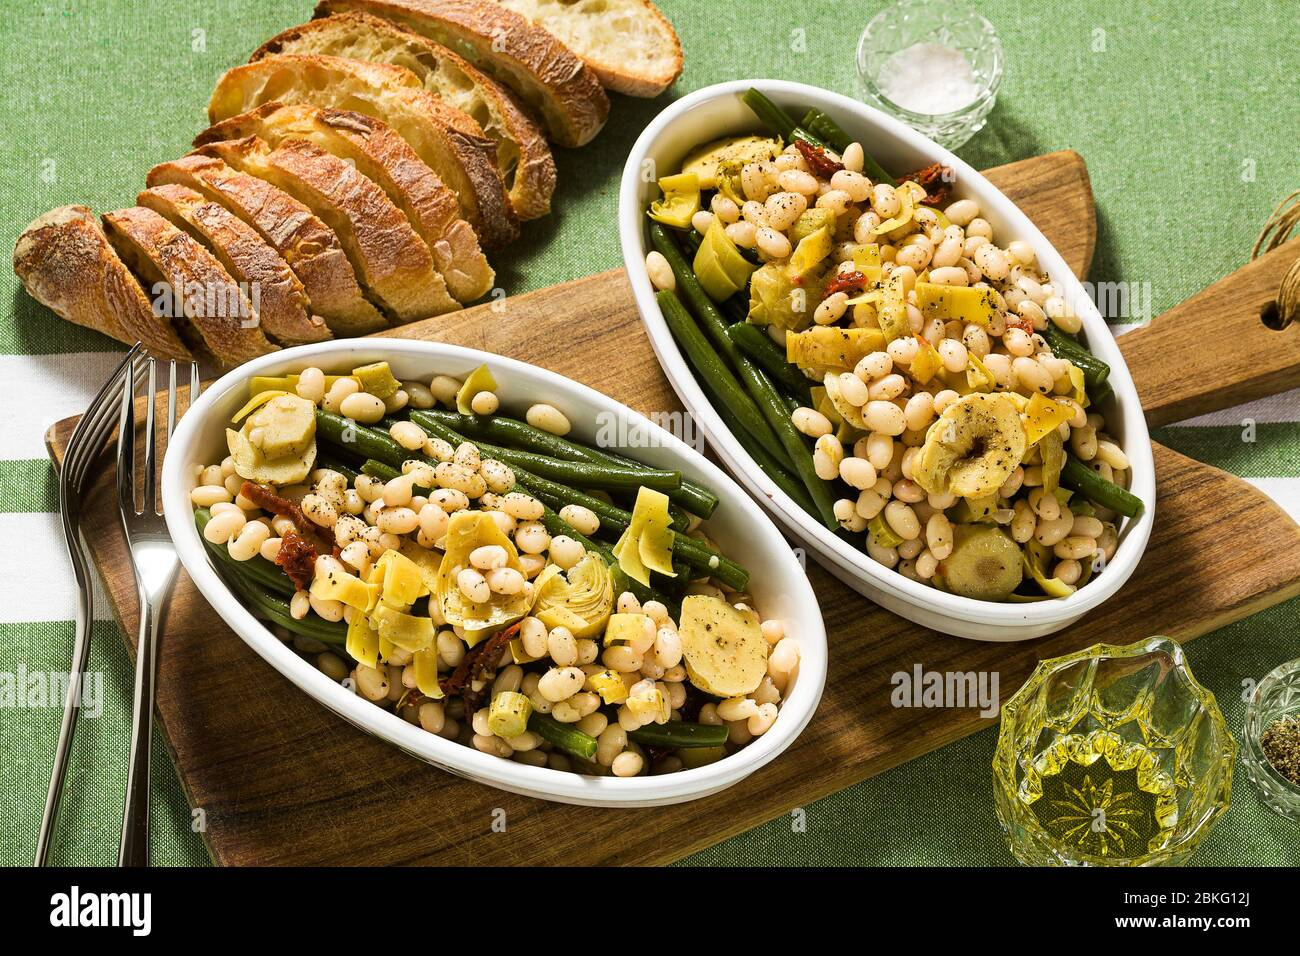 Cannellini nutritious white bean salad with green beans, sun-dried tomatoes and artichokes in oil. Traditional italian food Stock Photo